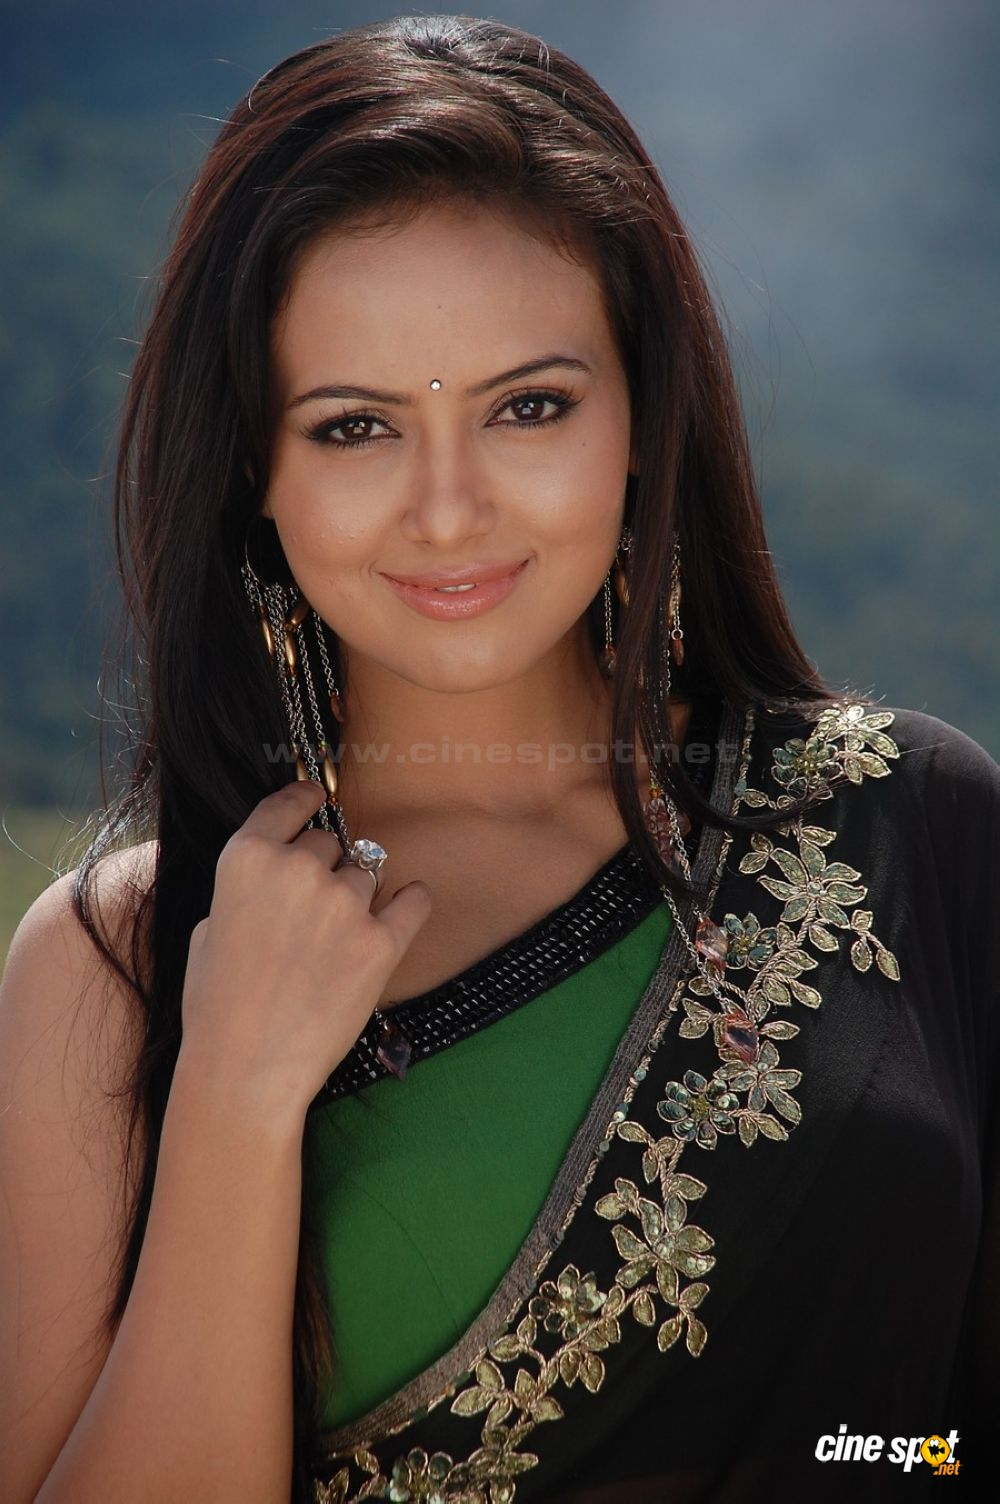 Download this Hot Sexy Photos Pics Sana Khan Telugu Movie Actress Spicy picture